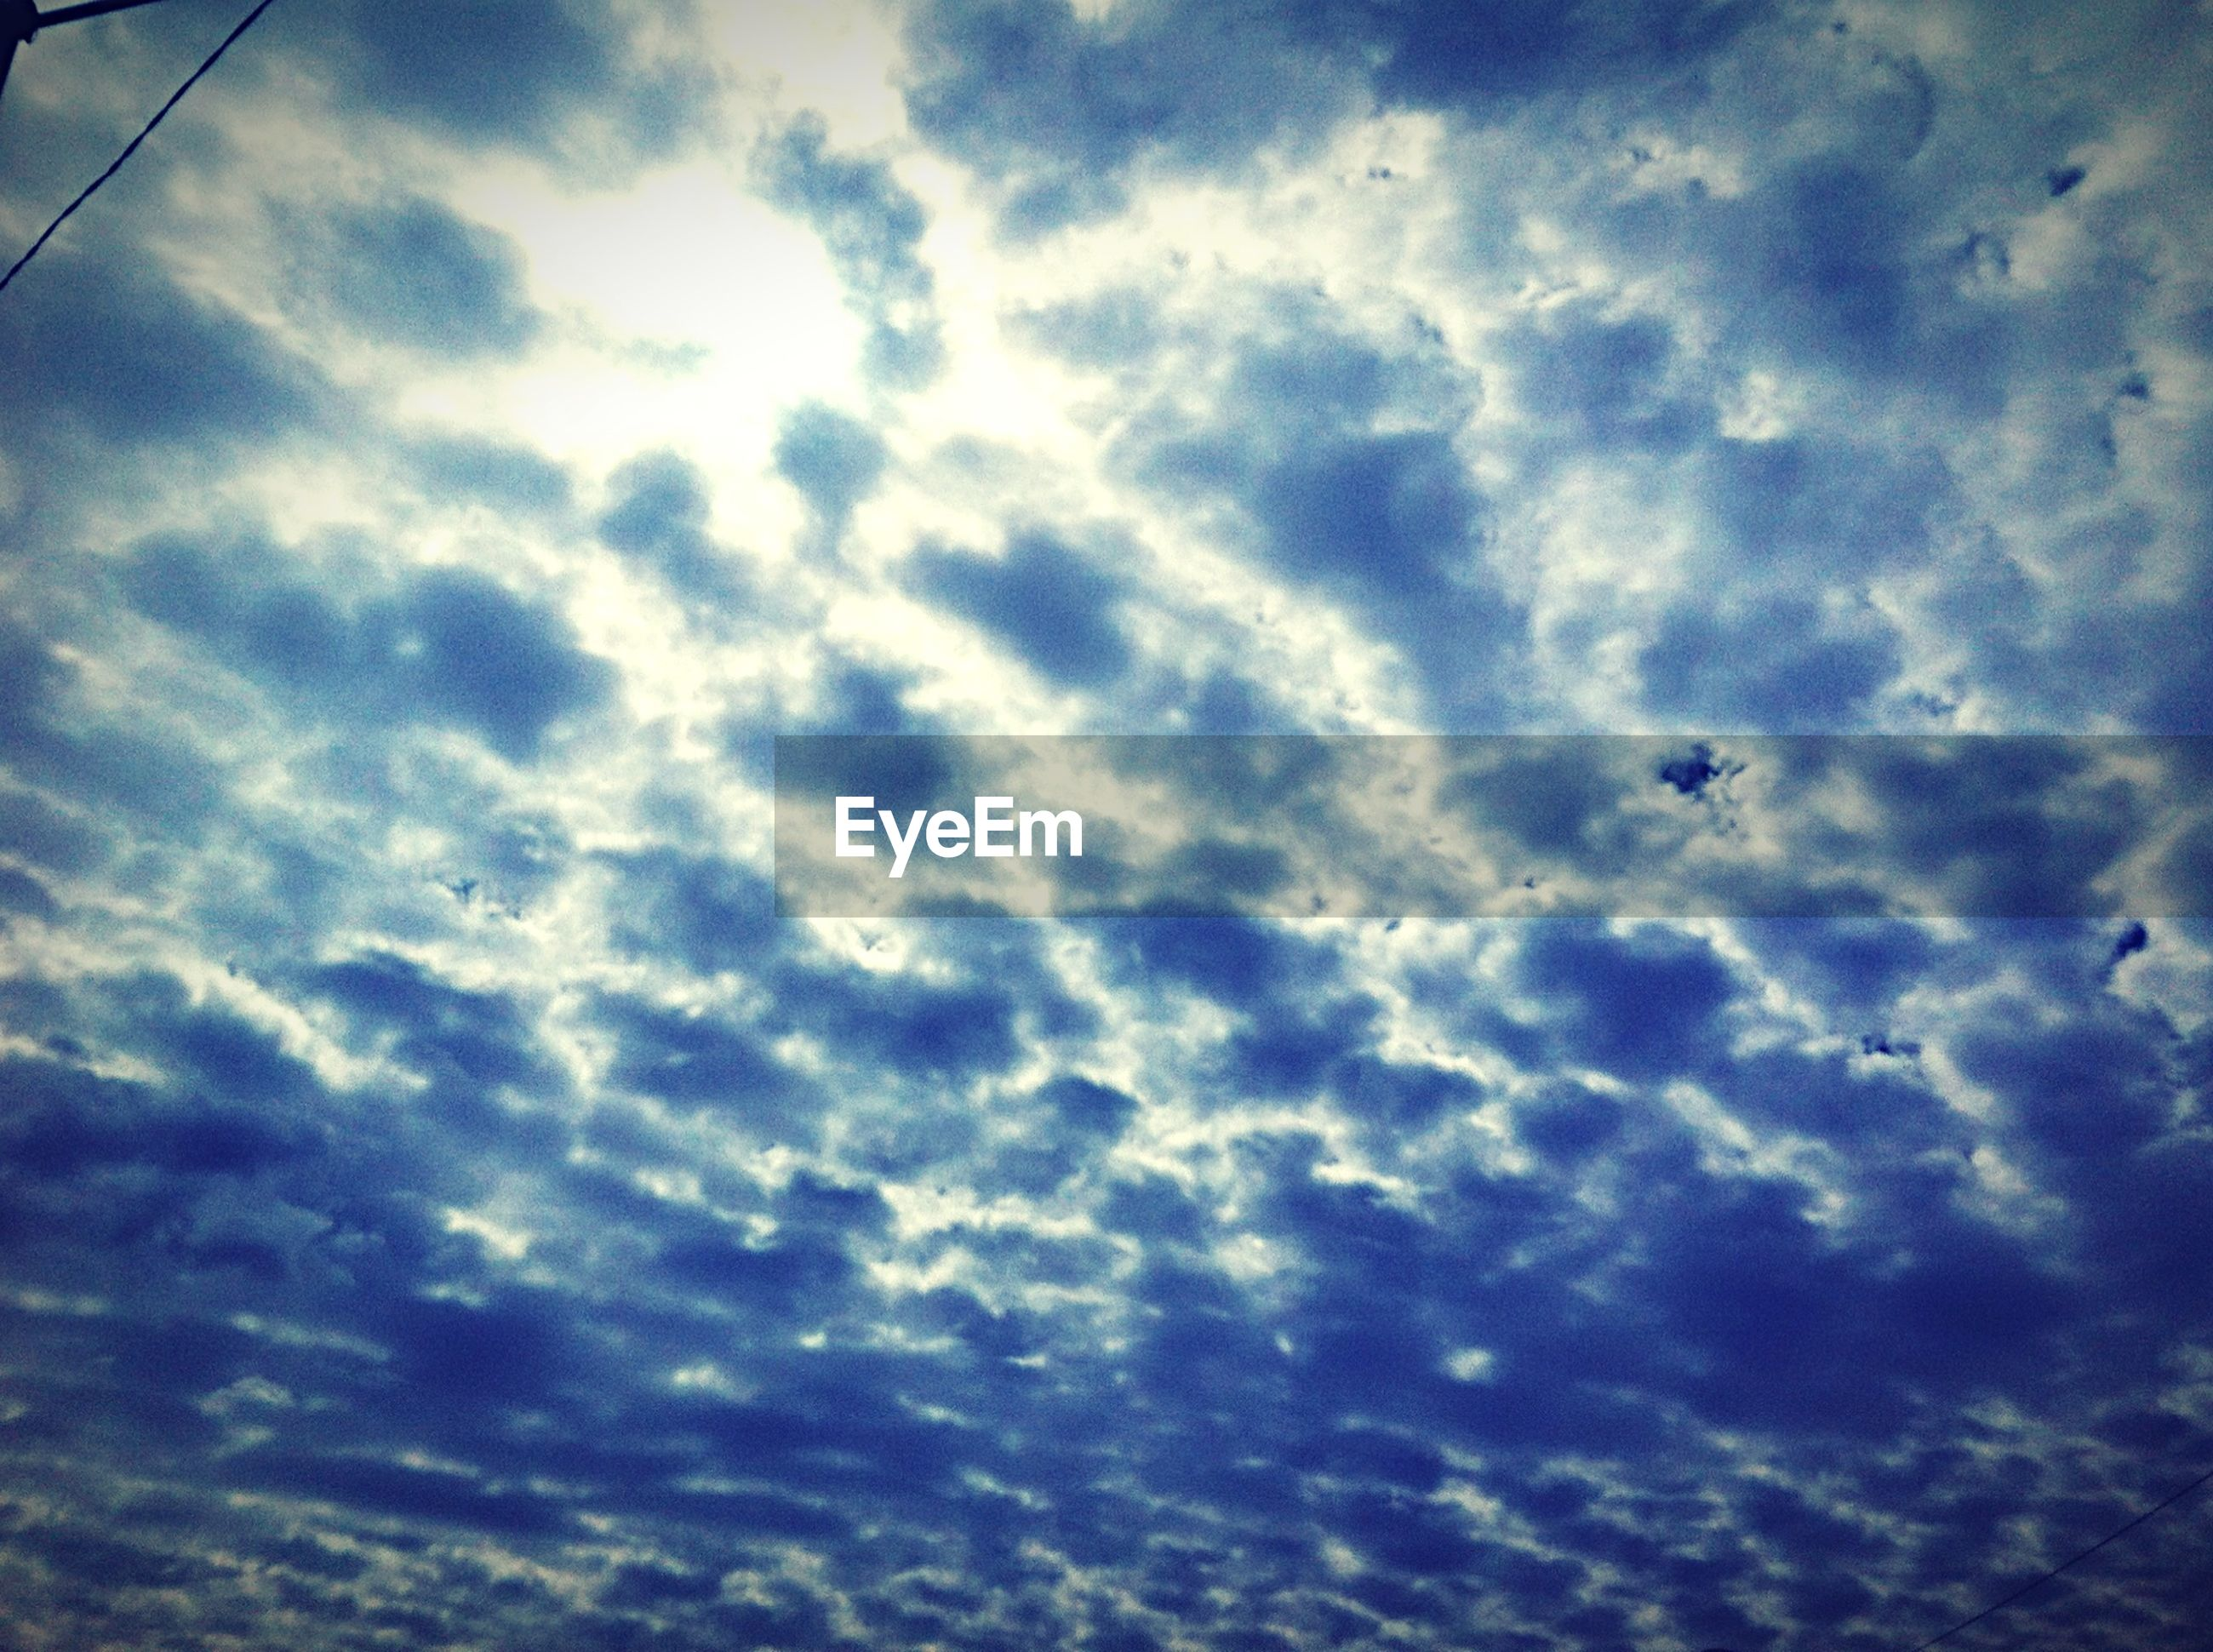 sky, cloud - sky, low angle view, cloudy, sky only, backgrounds, full frame, cloudscape, beauty in nature, tranquility, cloud, nature, scenics, weather, tranquil scene, idyllic, no people, blue, outdoors, day